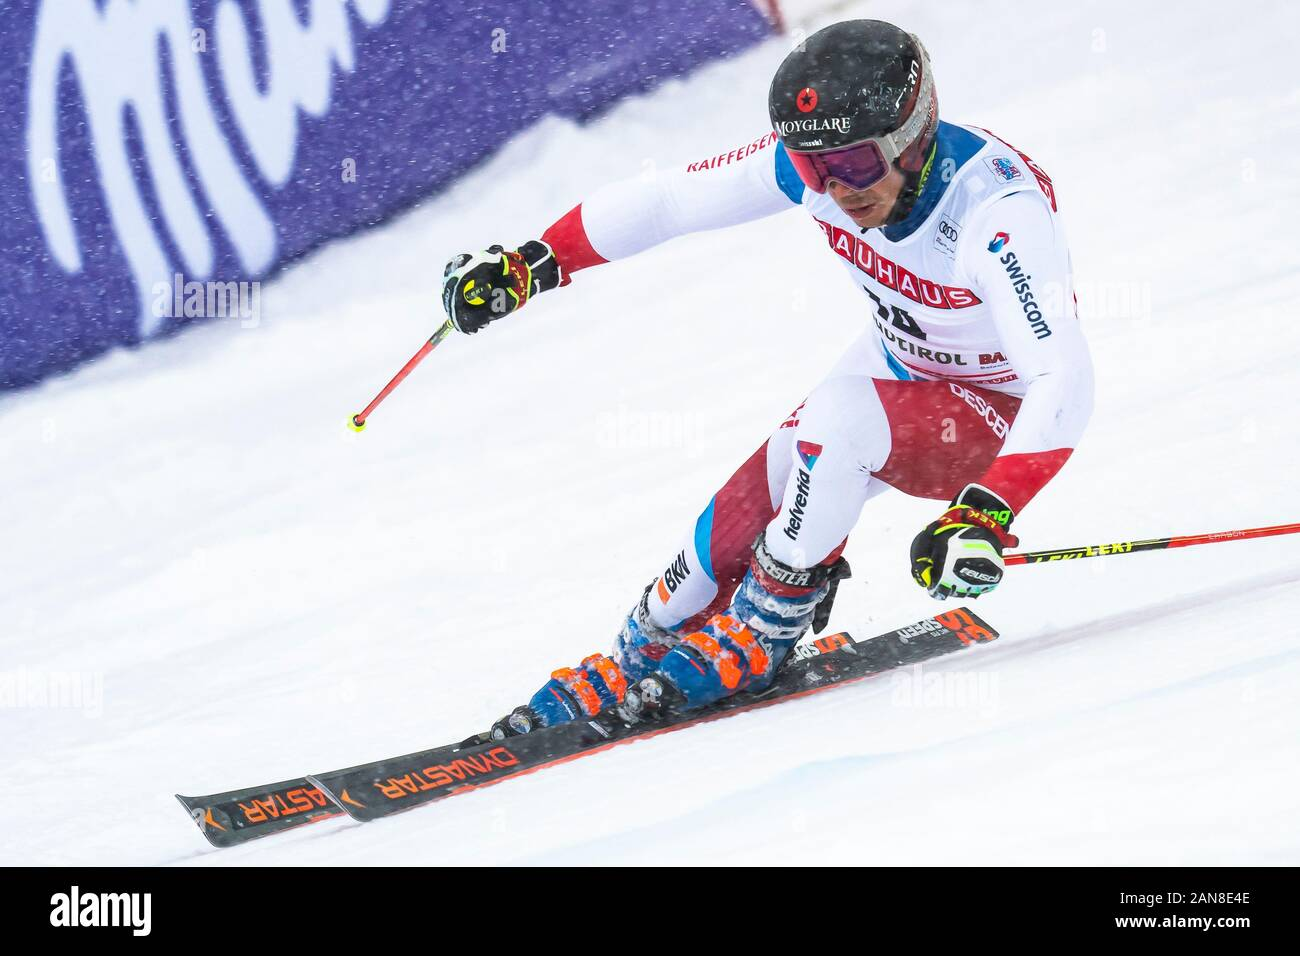 Alta Badia, Italy 22 December 2019.  CAVIEZEL Gino (Sui) competing in the Audi Fis Alpine Skiing World Cup Men's Giant Slalom on the Gran Risa Course Stock Photo